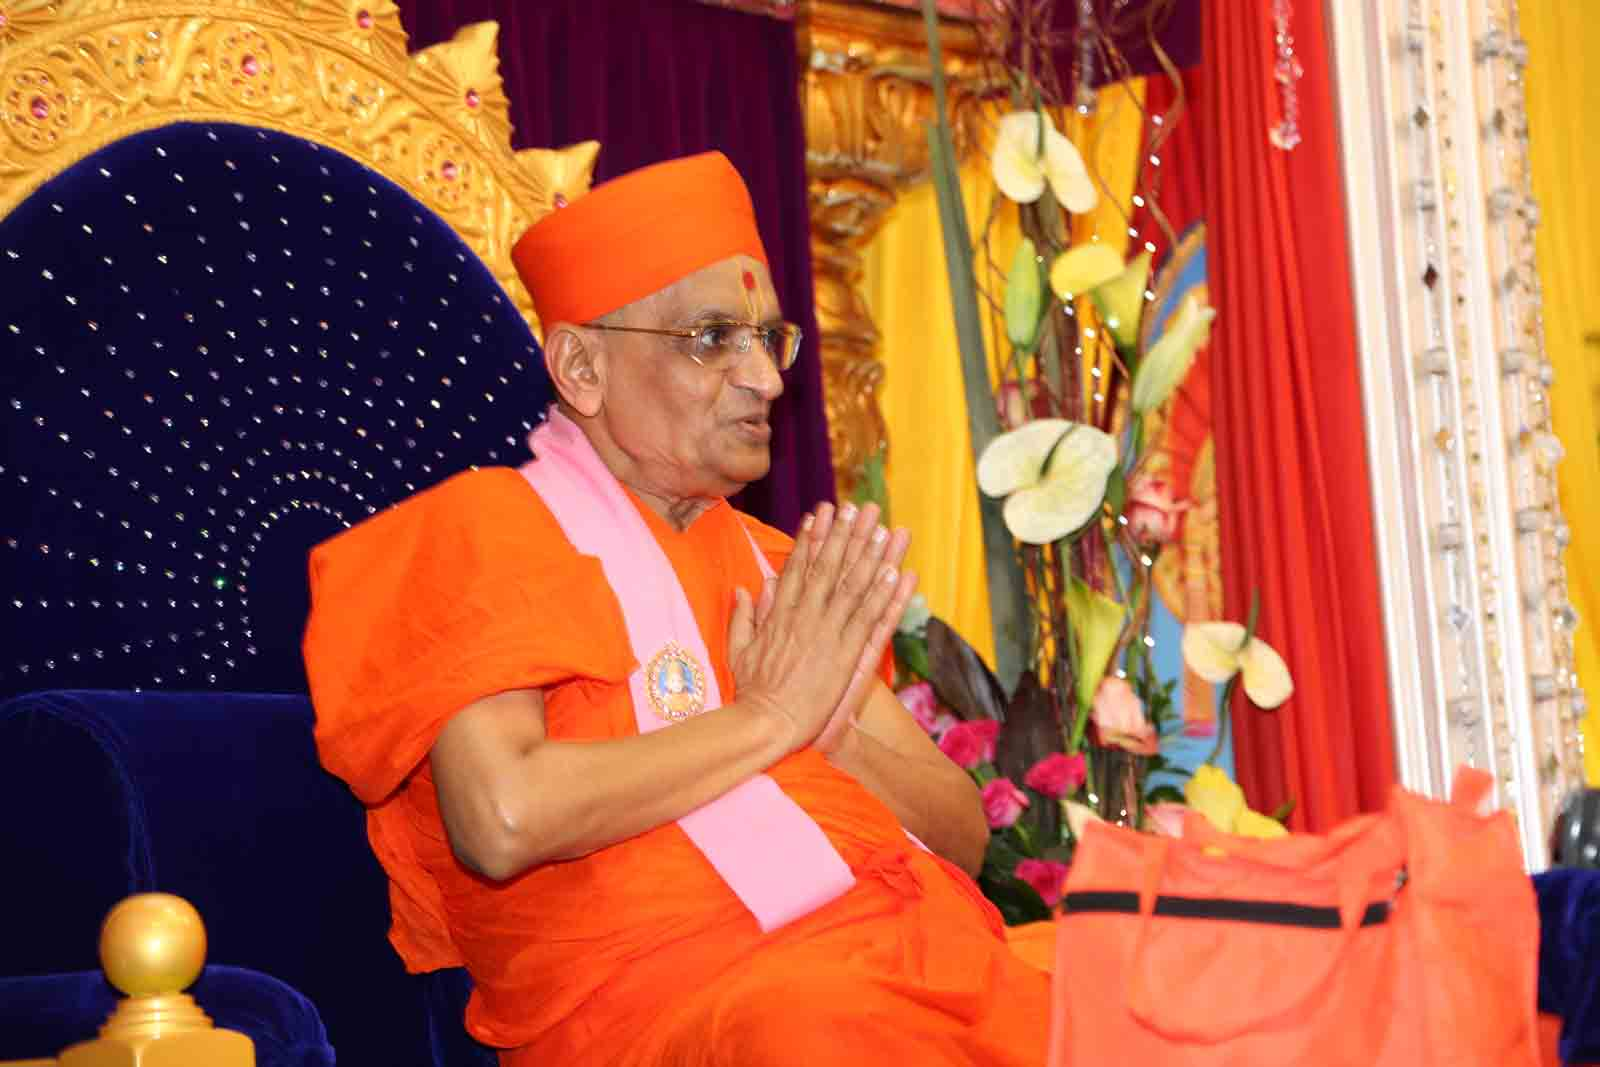 Acharya Swamishree starting his divine discourses with Jay Shree Swaminarayan